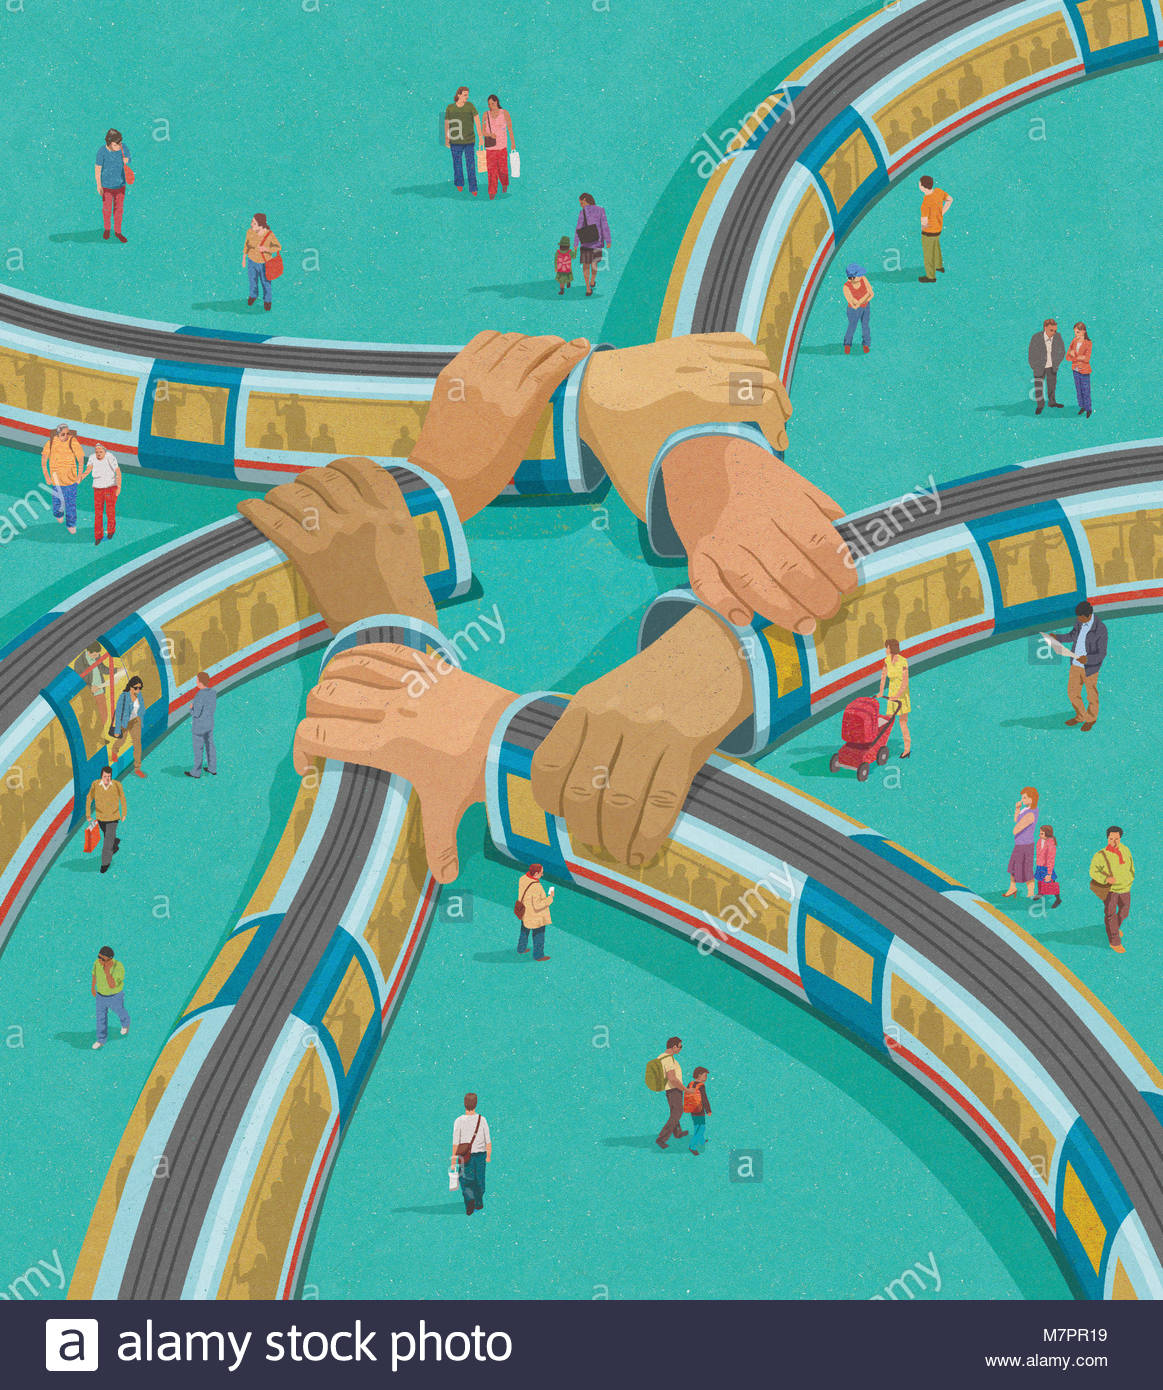 Trains interconnecting as linked arms - Stock Image